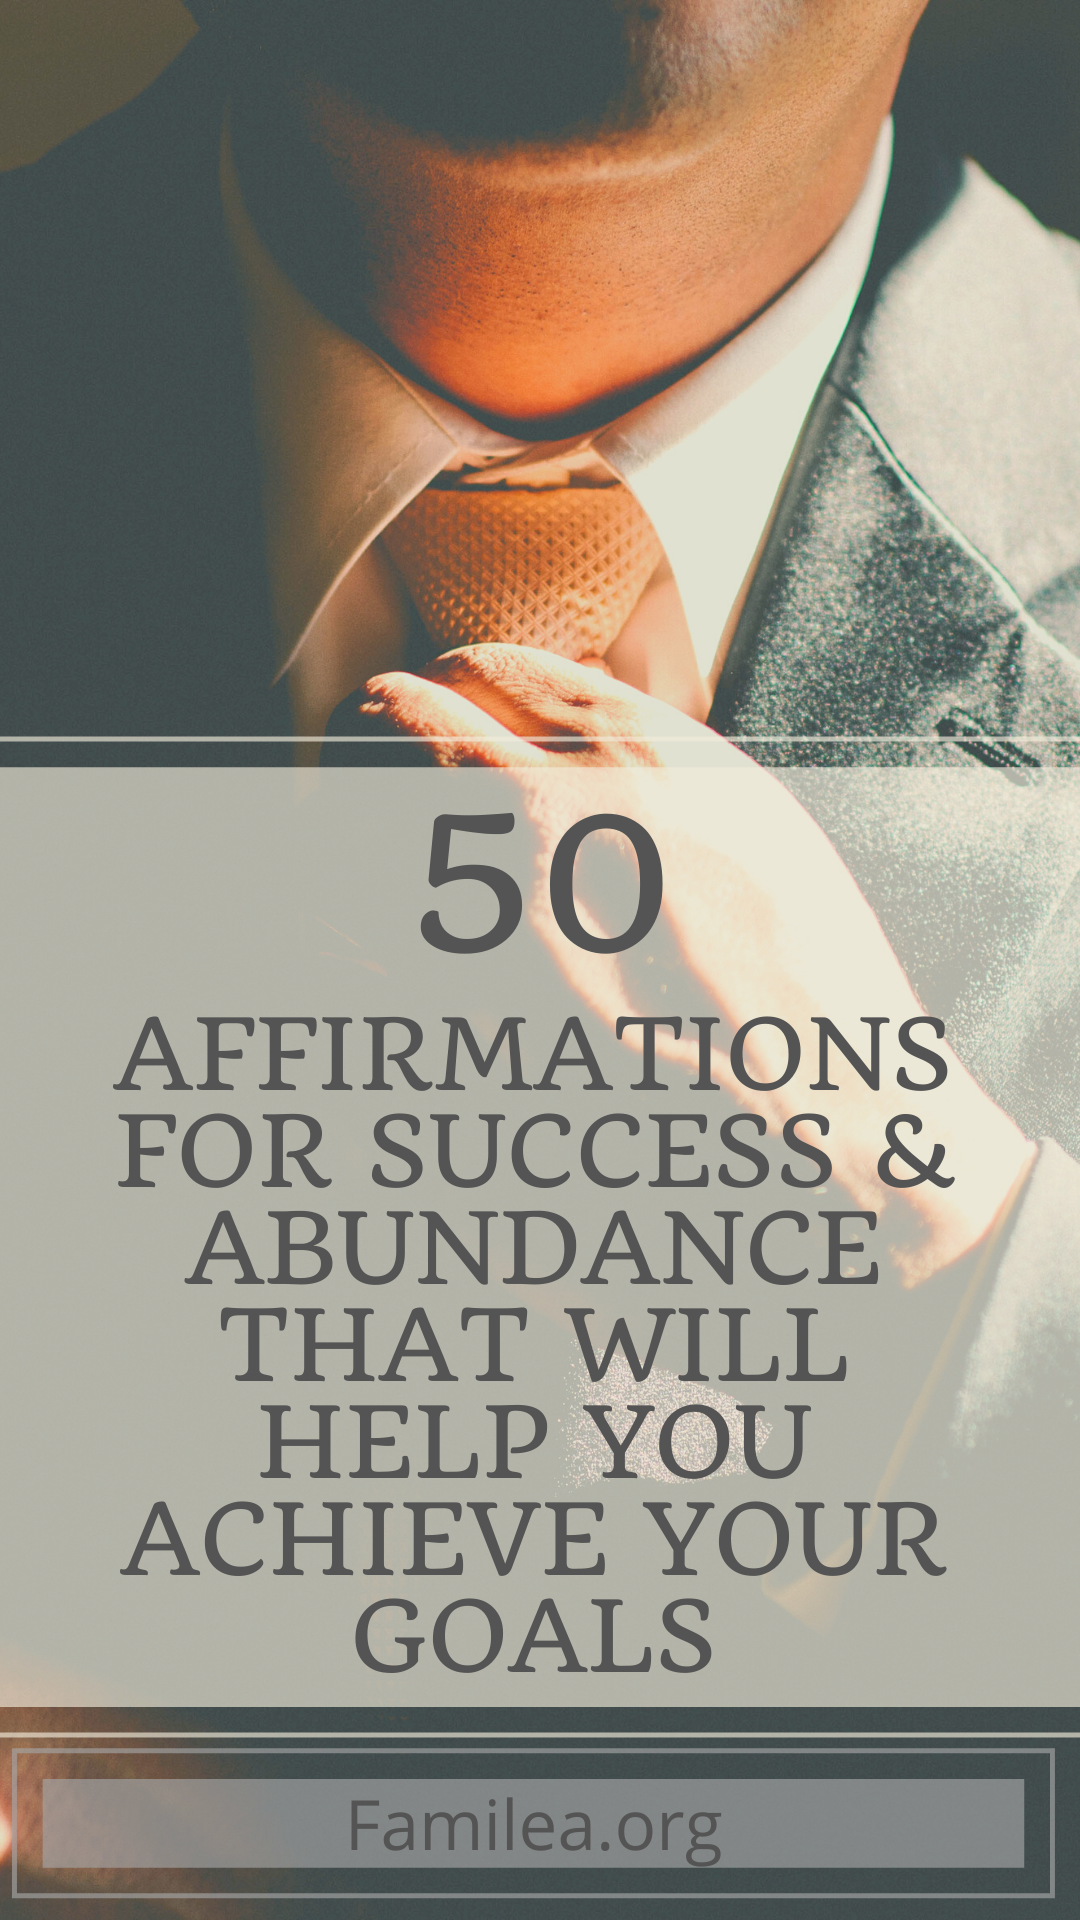 50 Affirmations for Success & Abundance that Will Help You Achieve Your Goals